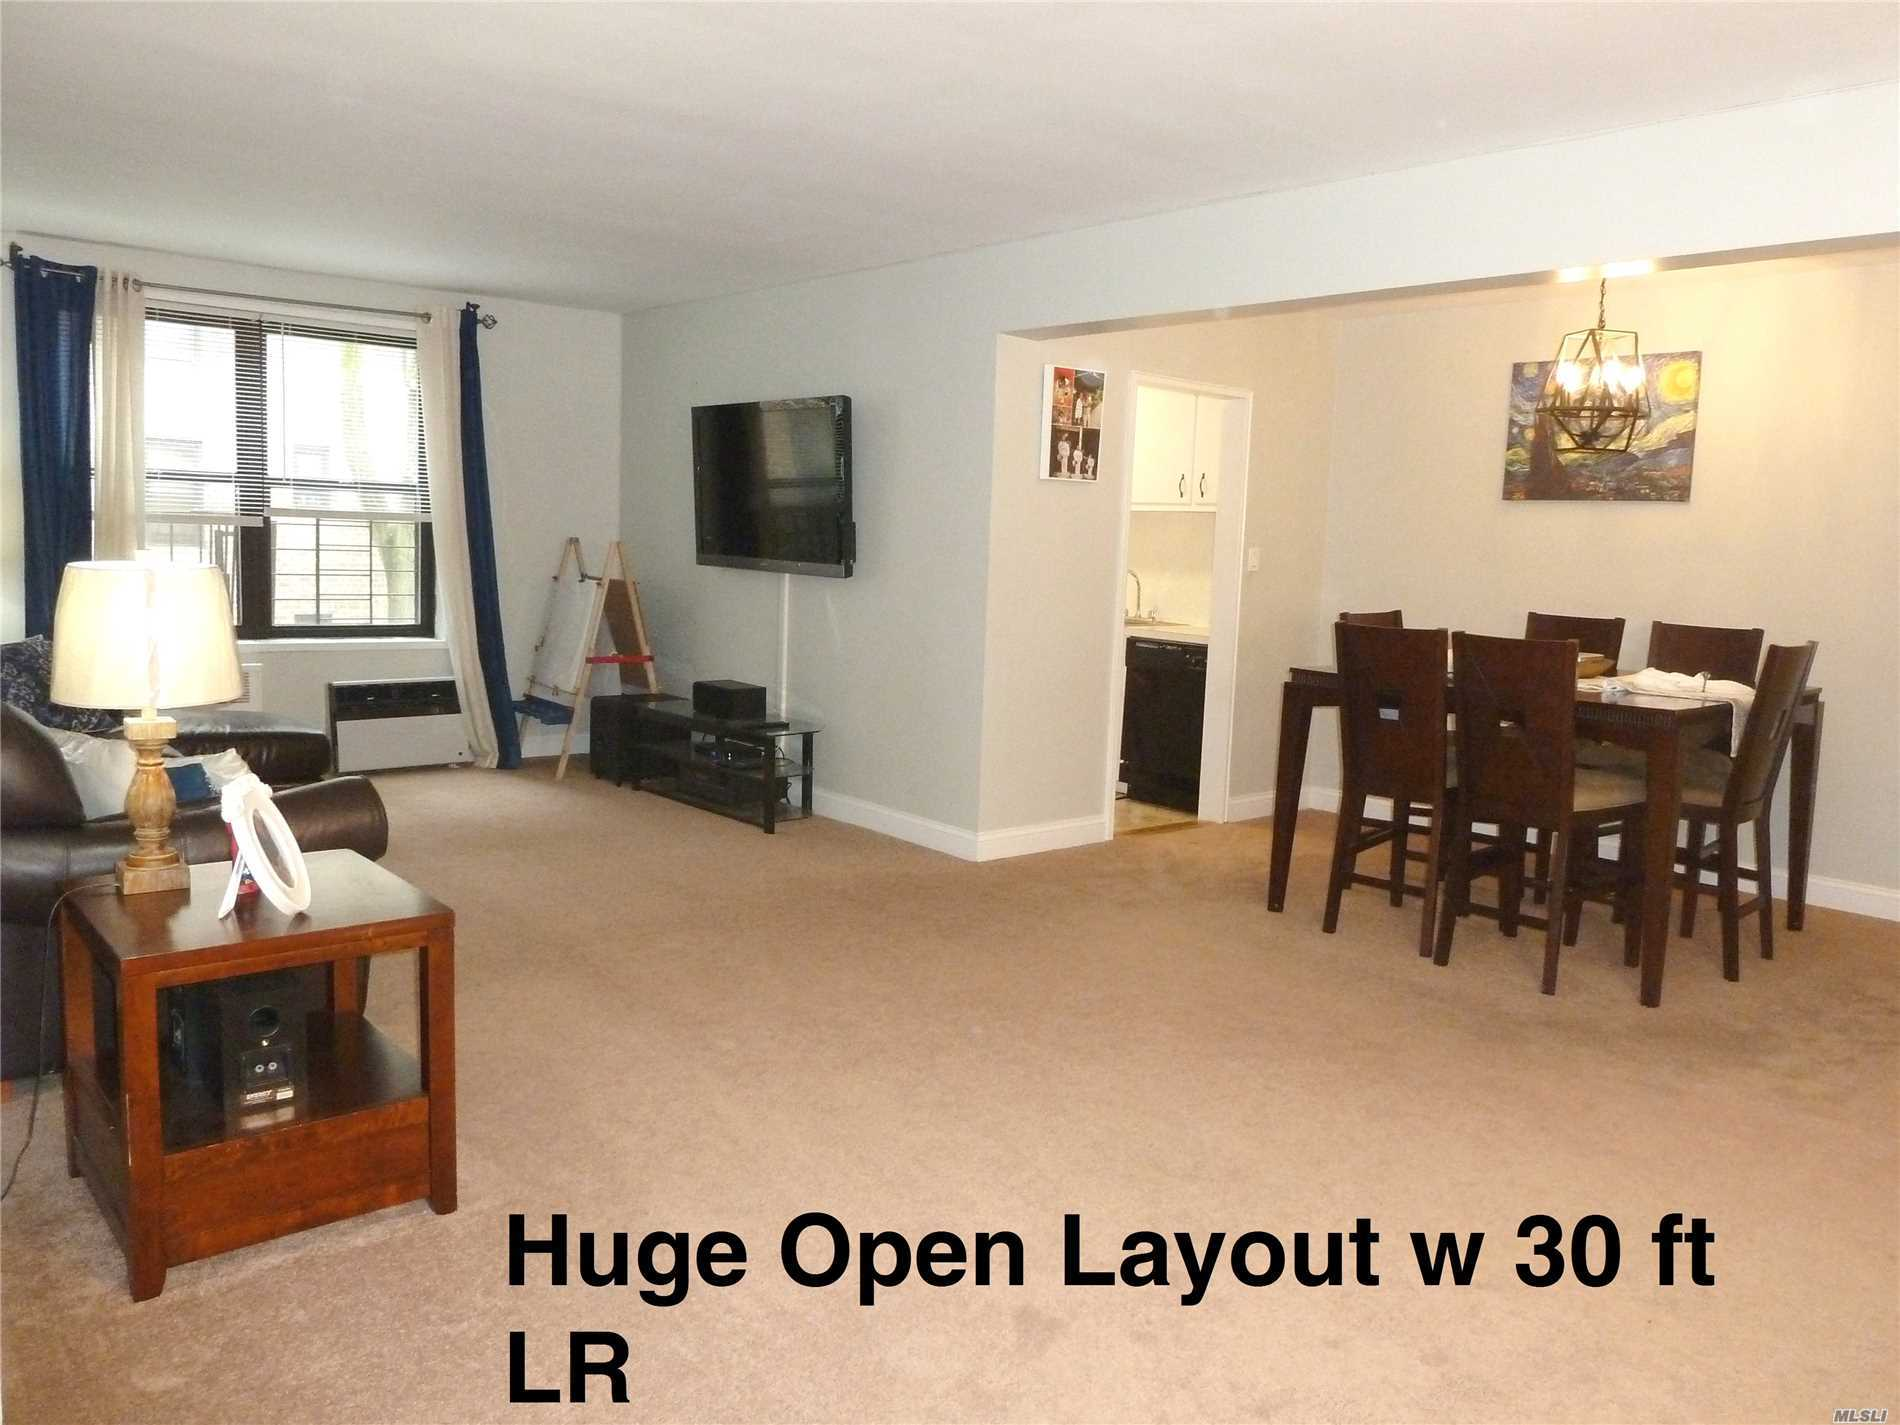 House Size 2Br In Beautiful Community W/Pool, Free Prkng, Ez Commute, Sd26, Ps188 & New, 24 Hour Laundry. Huge, 30Ft Lr, Kingsize Mbr, Queensize Br2. Tons Of Big Closets, Free Storage Rms. Wood Flrs Under New Carpet Thru-Out! New Appliances, 3 New Ac's, New Molding & Paint. Xbus & Ltd Q46(Very Fast Ride To E&F Trains) Steps Away. Elegant And Immaculate Community In Sd26. Open Flow, Can Convert To 3rd Br. New Gas Heat, Appx 1200 Sq Ft. Walk To Shops, House Of Worship, Alley Park. Ez Board, Live In Super